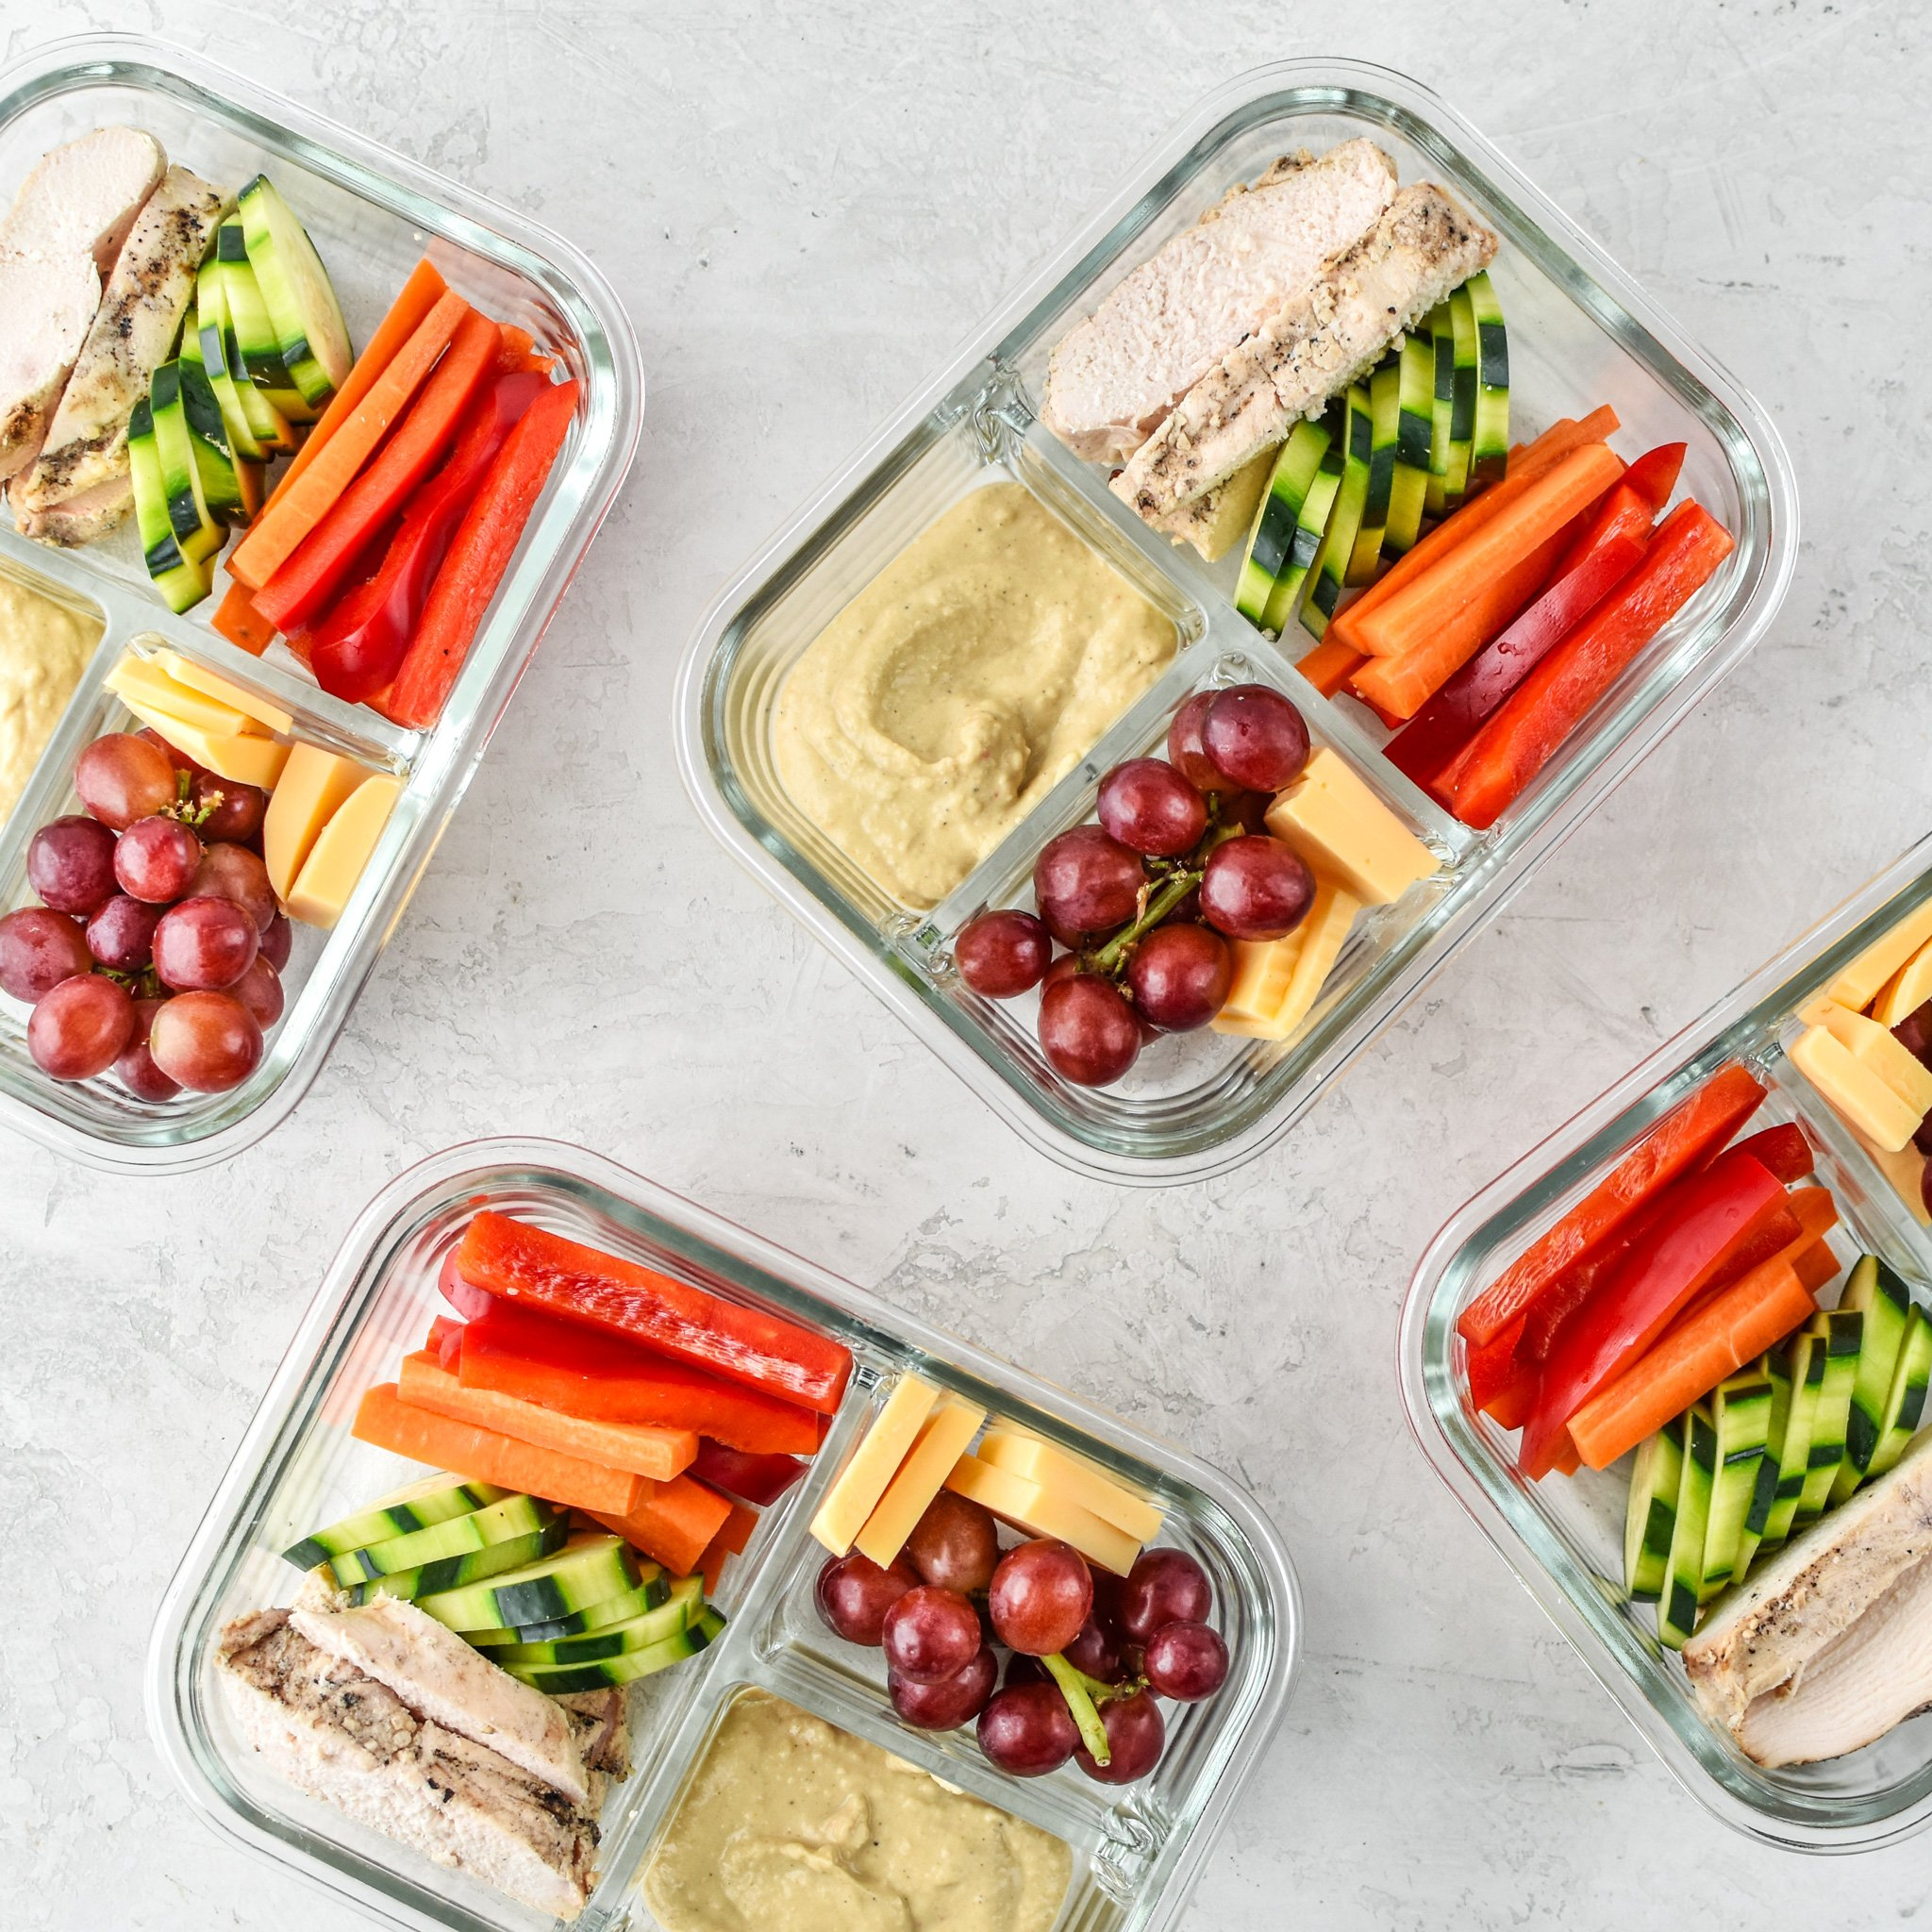 Four Chicken & Hummus Plate Lunch Meal Prep meals ready to be eaten!